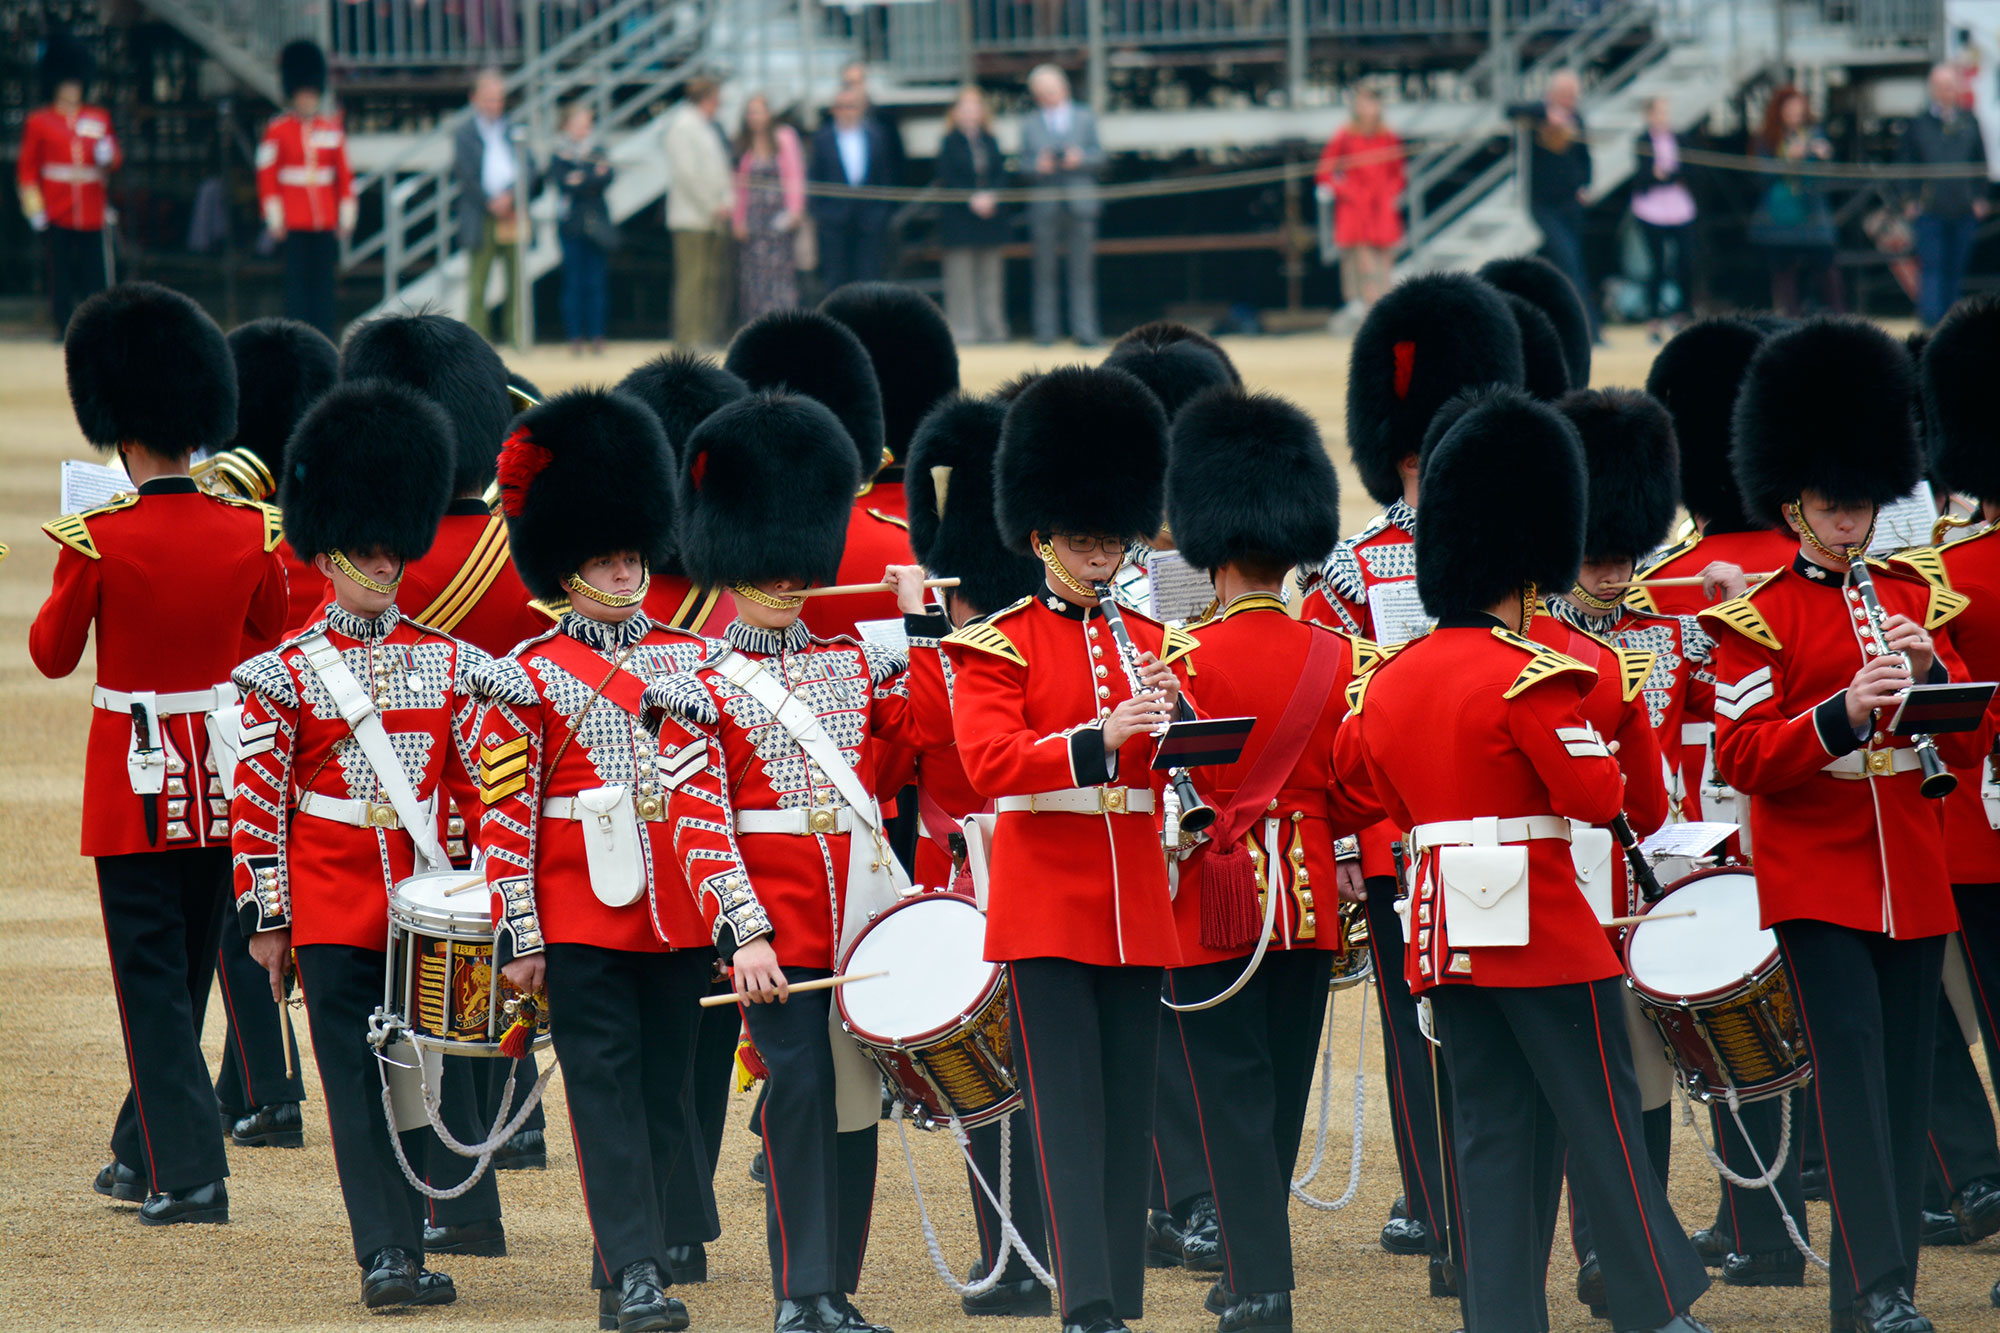 Trooping the Colour - What, Where, When? - Roaming Required